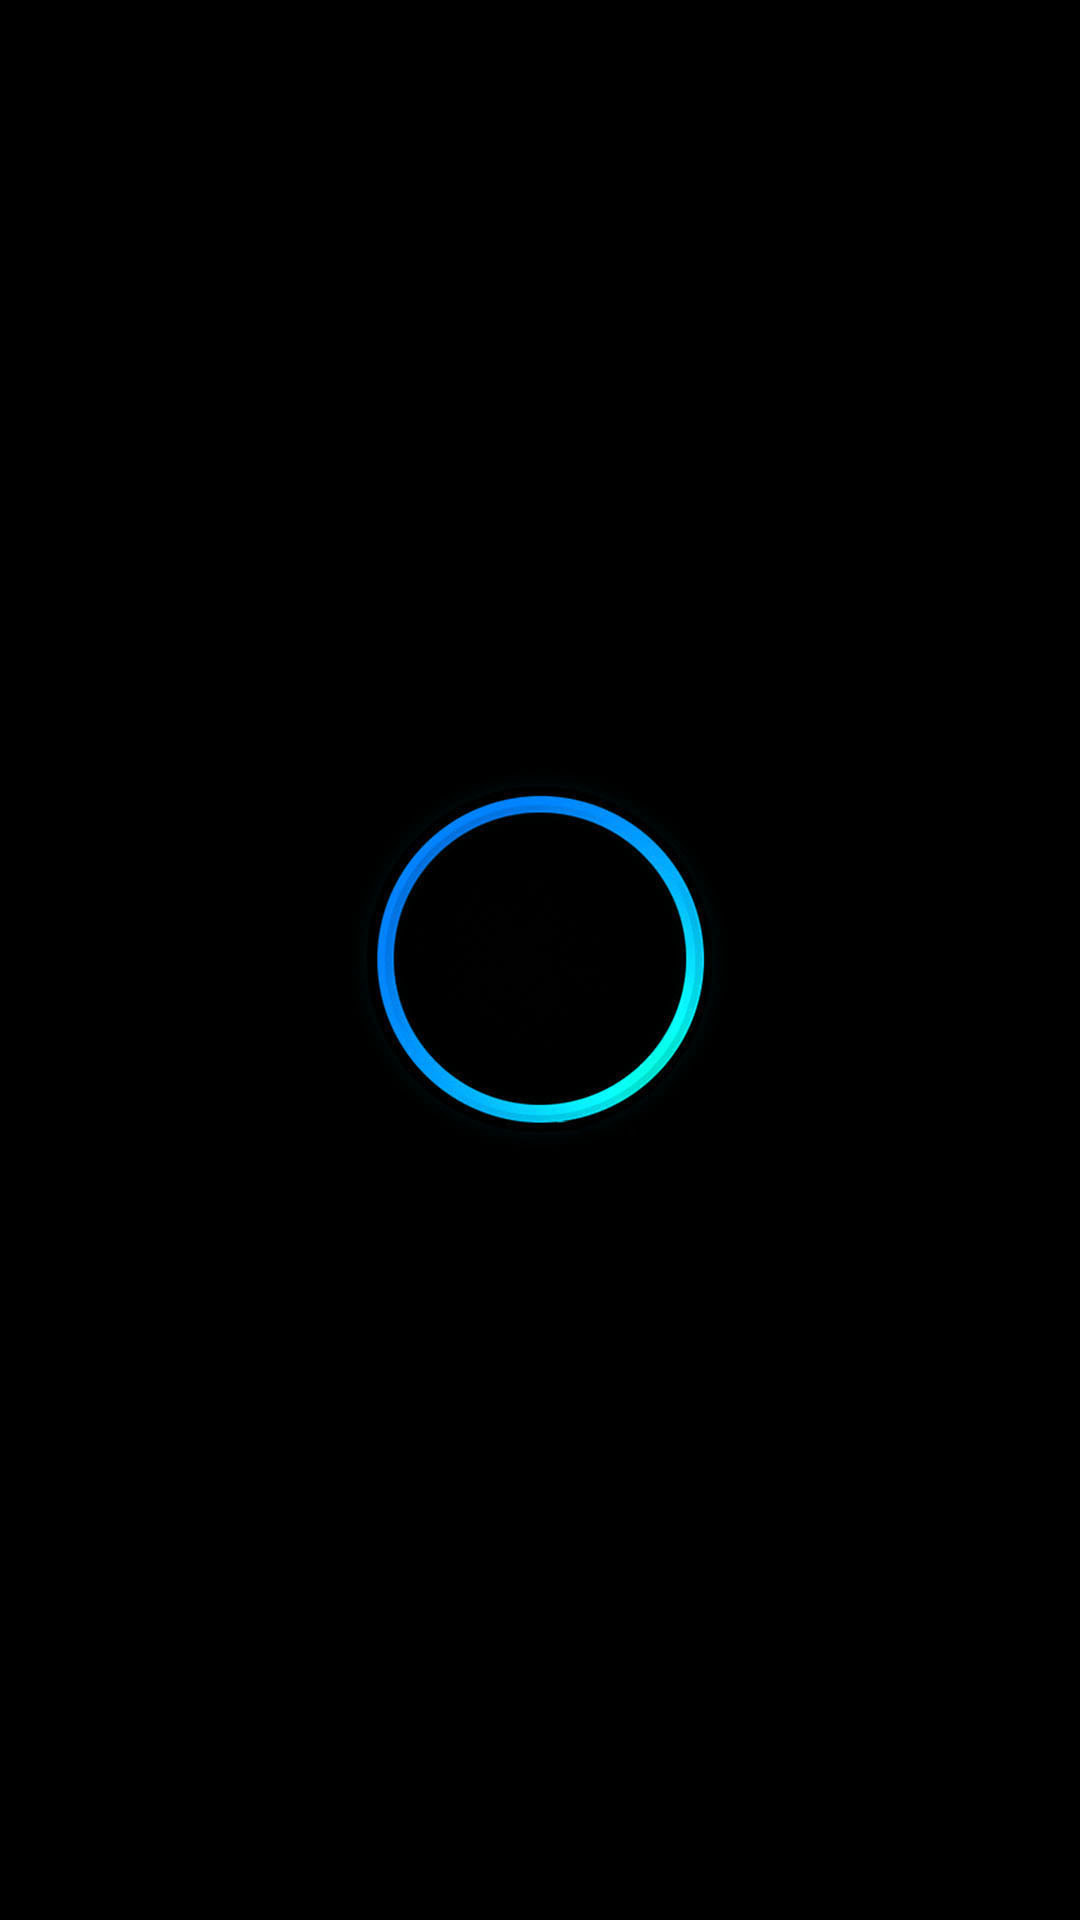 Turquoise Blue Circle Minimal Android Wallpaper …